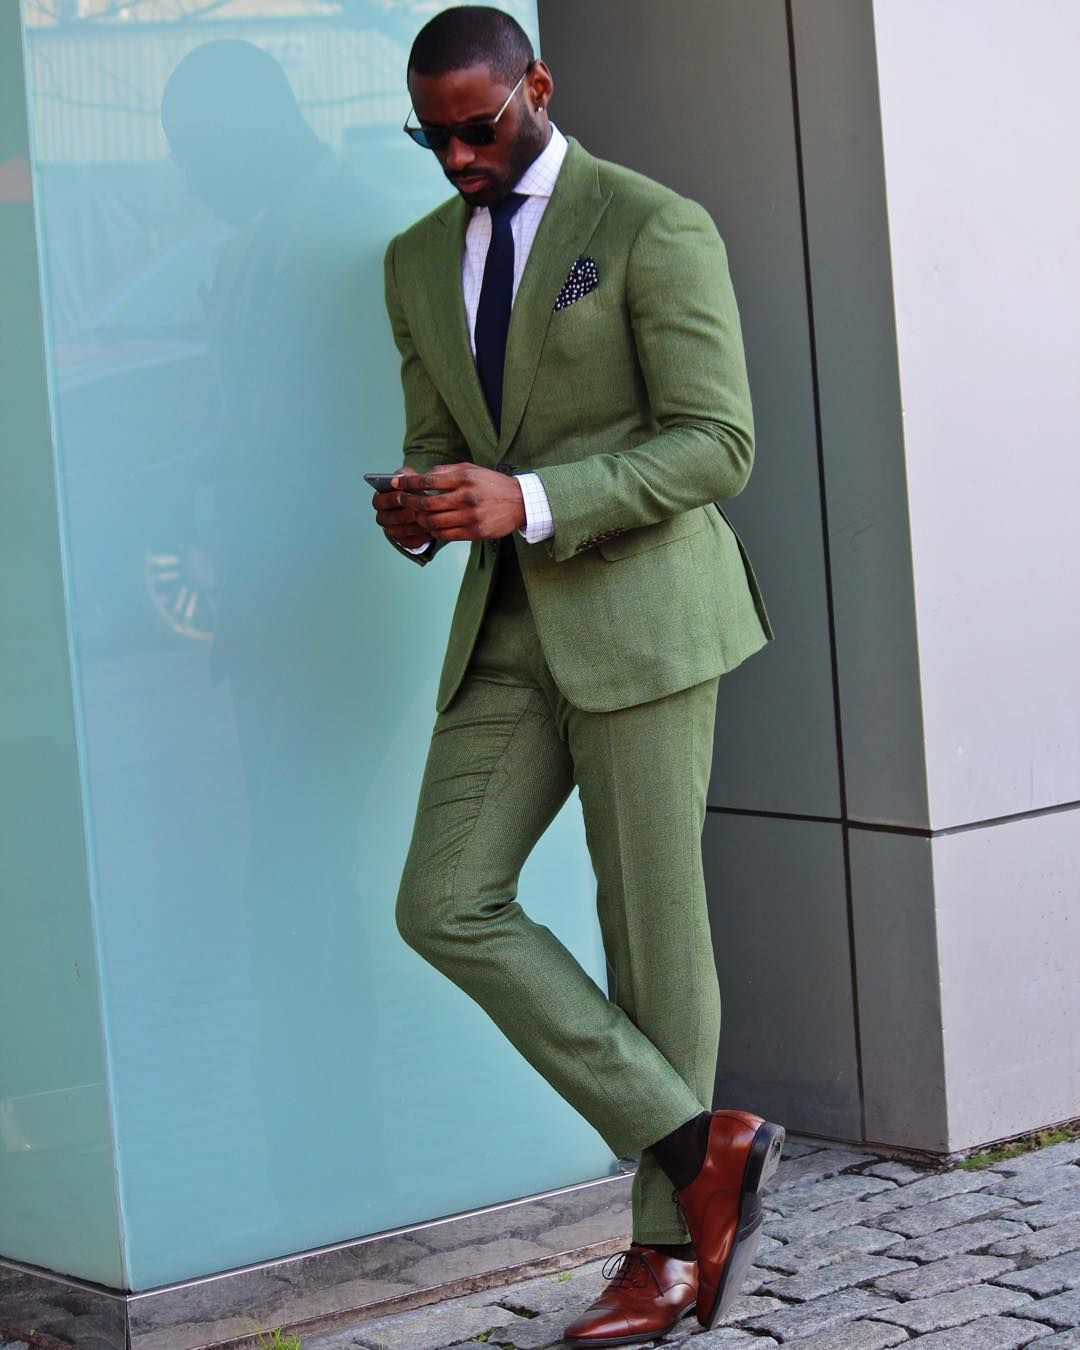 reinventing effortless style | Pinterest | Perfect fit, Dapper and ...